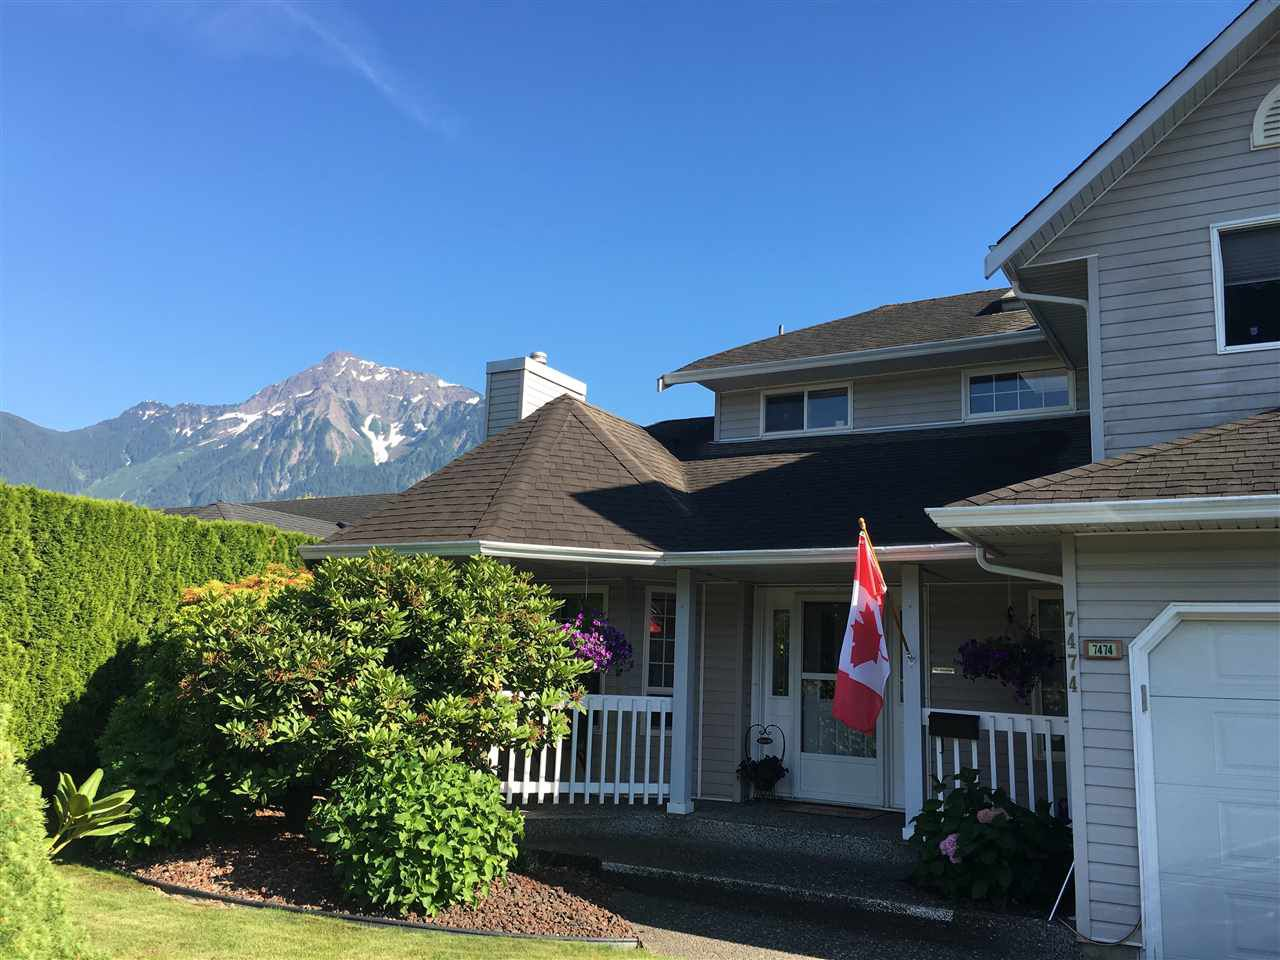 Main Photo: 7474 ARBUTUS Drive: Agassiz House for sale : MLS®# R2185830